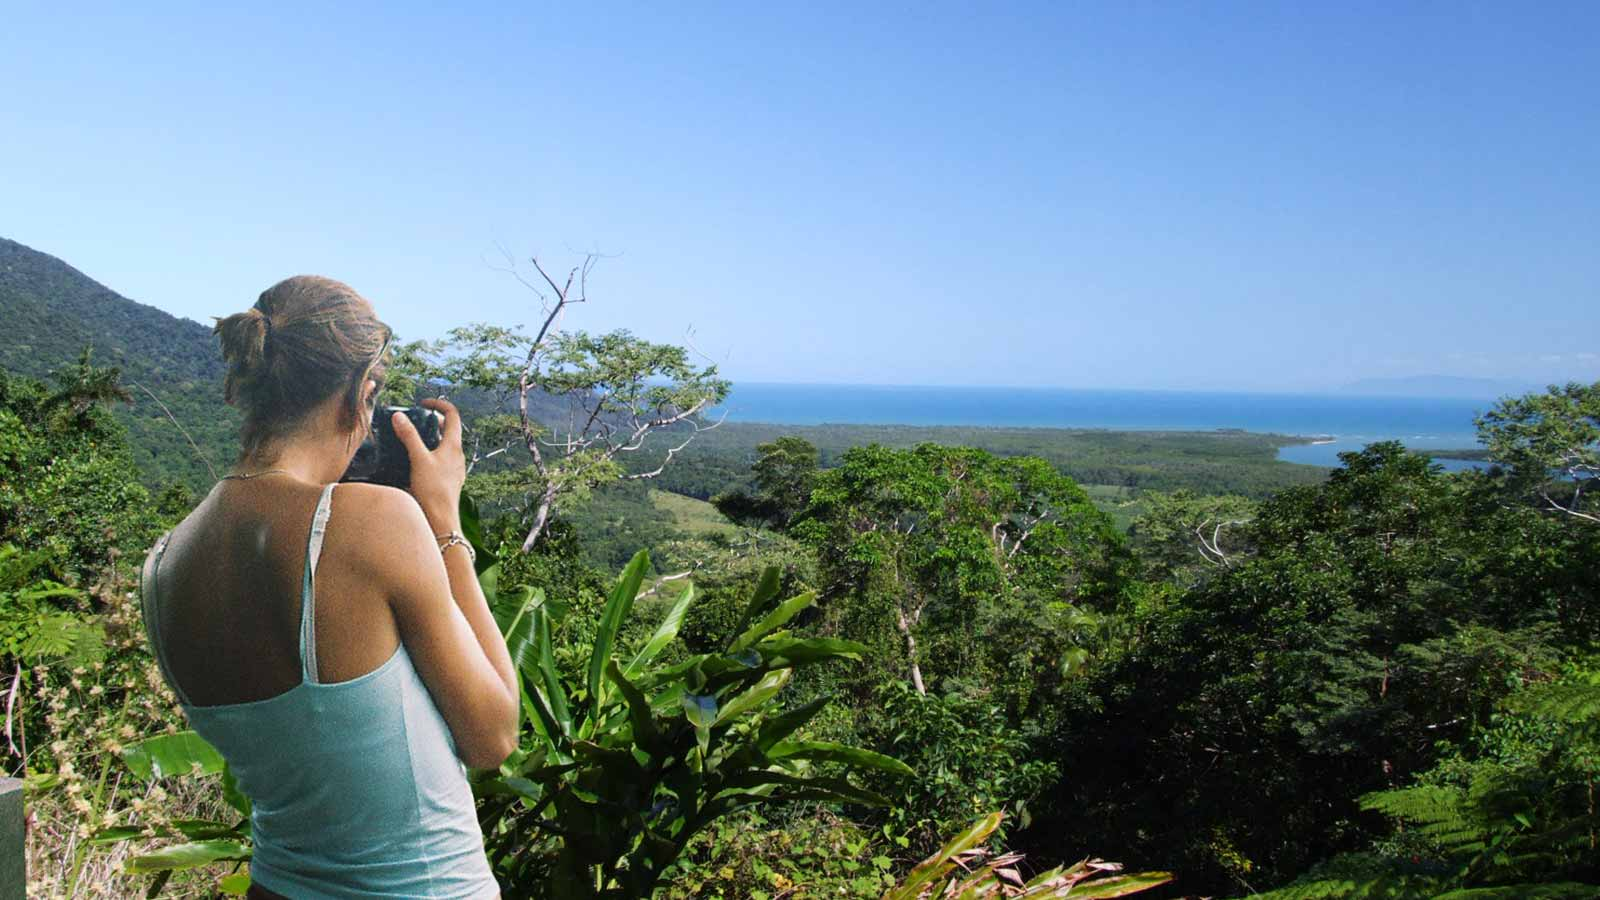 Taking a photo of the rainforest and ocean scenery